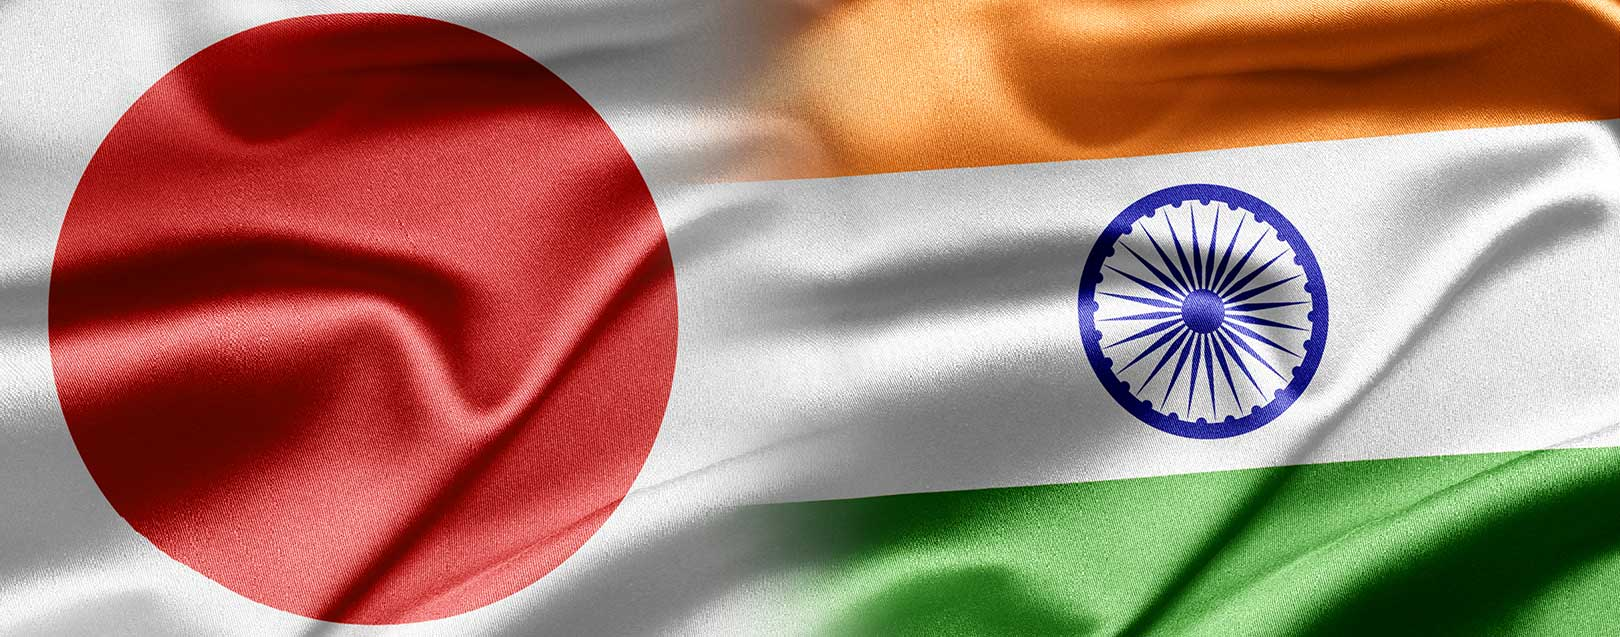 India, Japan ties on infra development offer opportunities for Singapore cos